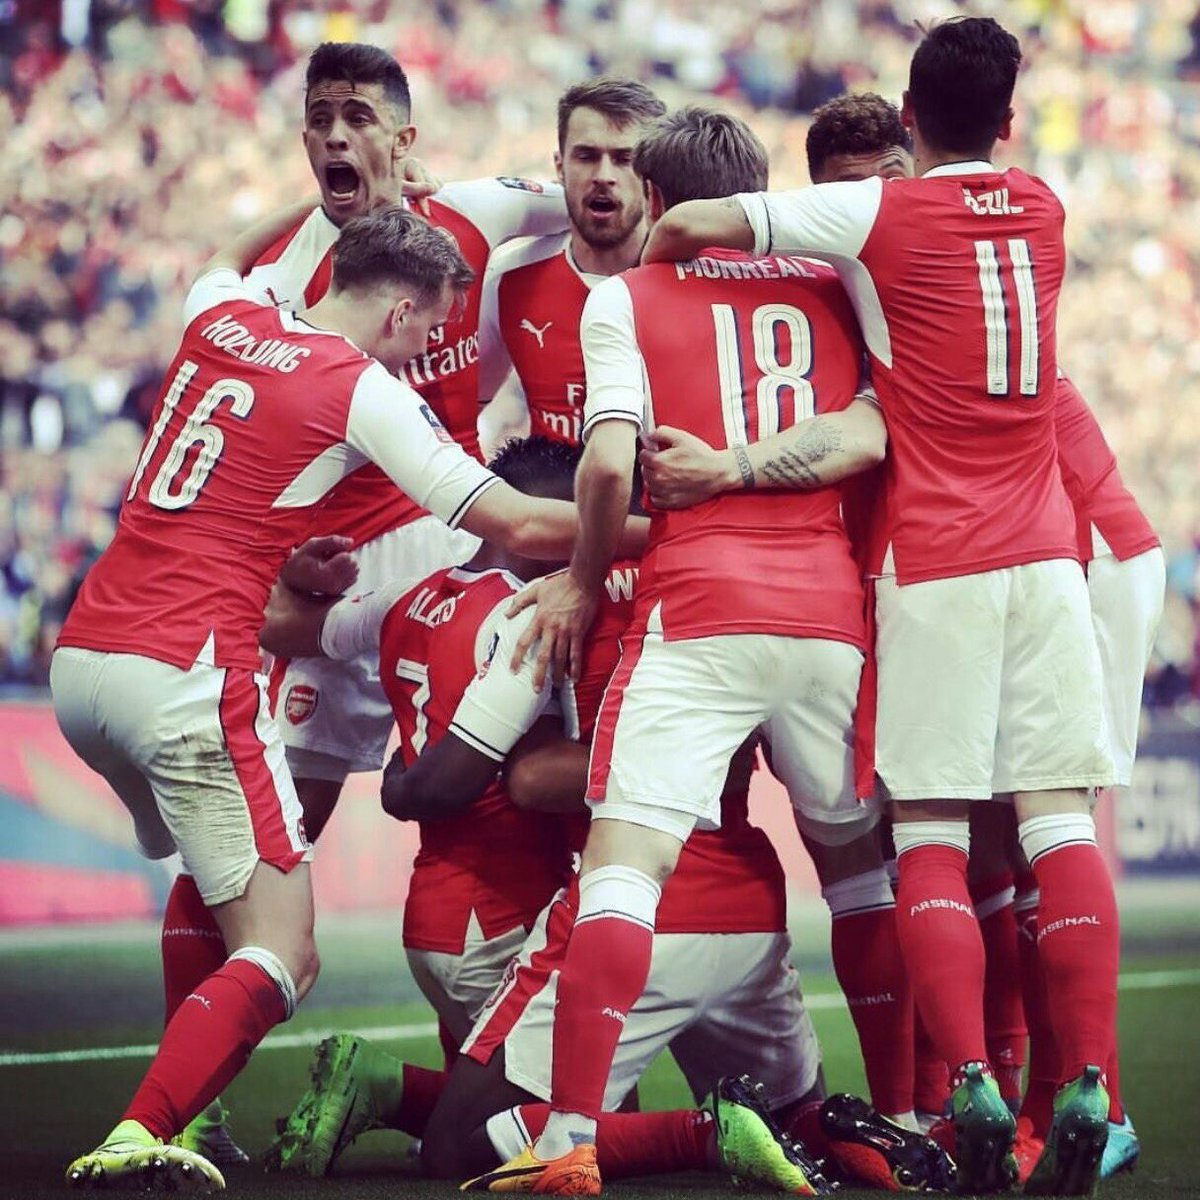 It&#39;s FA Cup final Matchday. Come on you Gunners #Arsenal <br>http://pic.twitter.com/uprA7ZdeYL